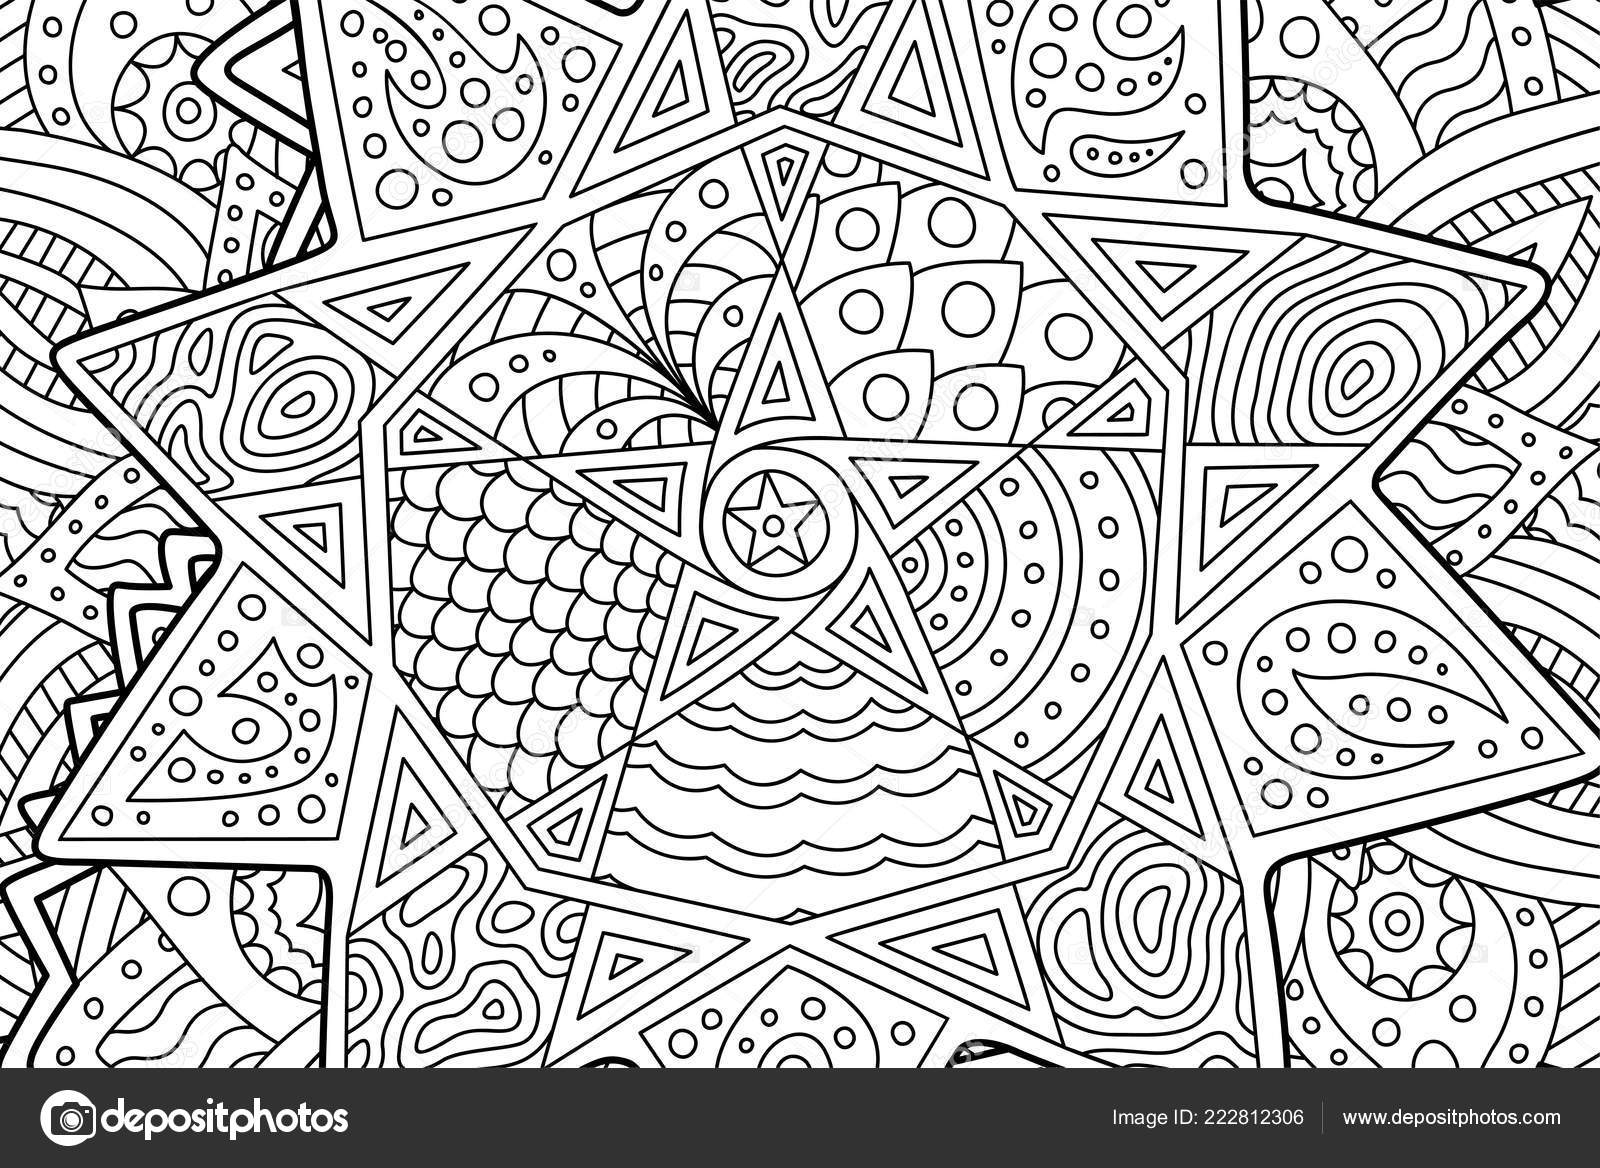 depositphotos stock illustration coloring book page with abstract